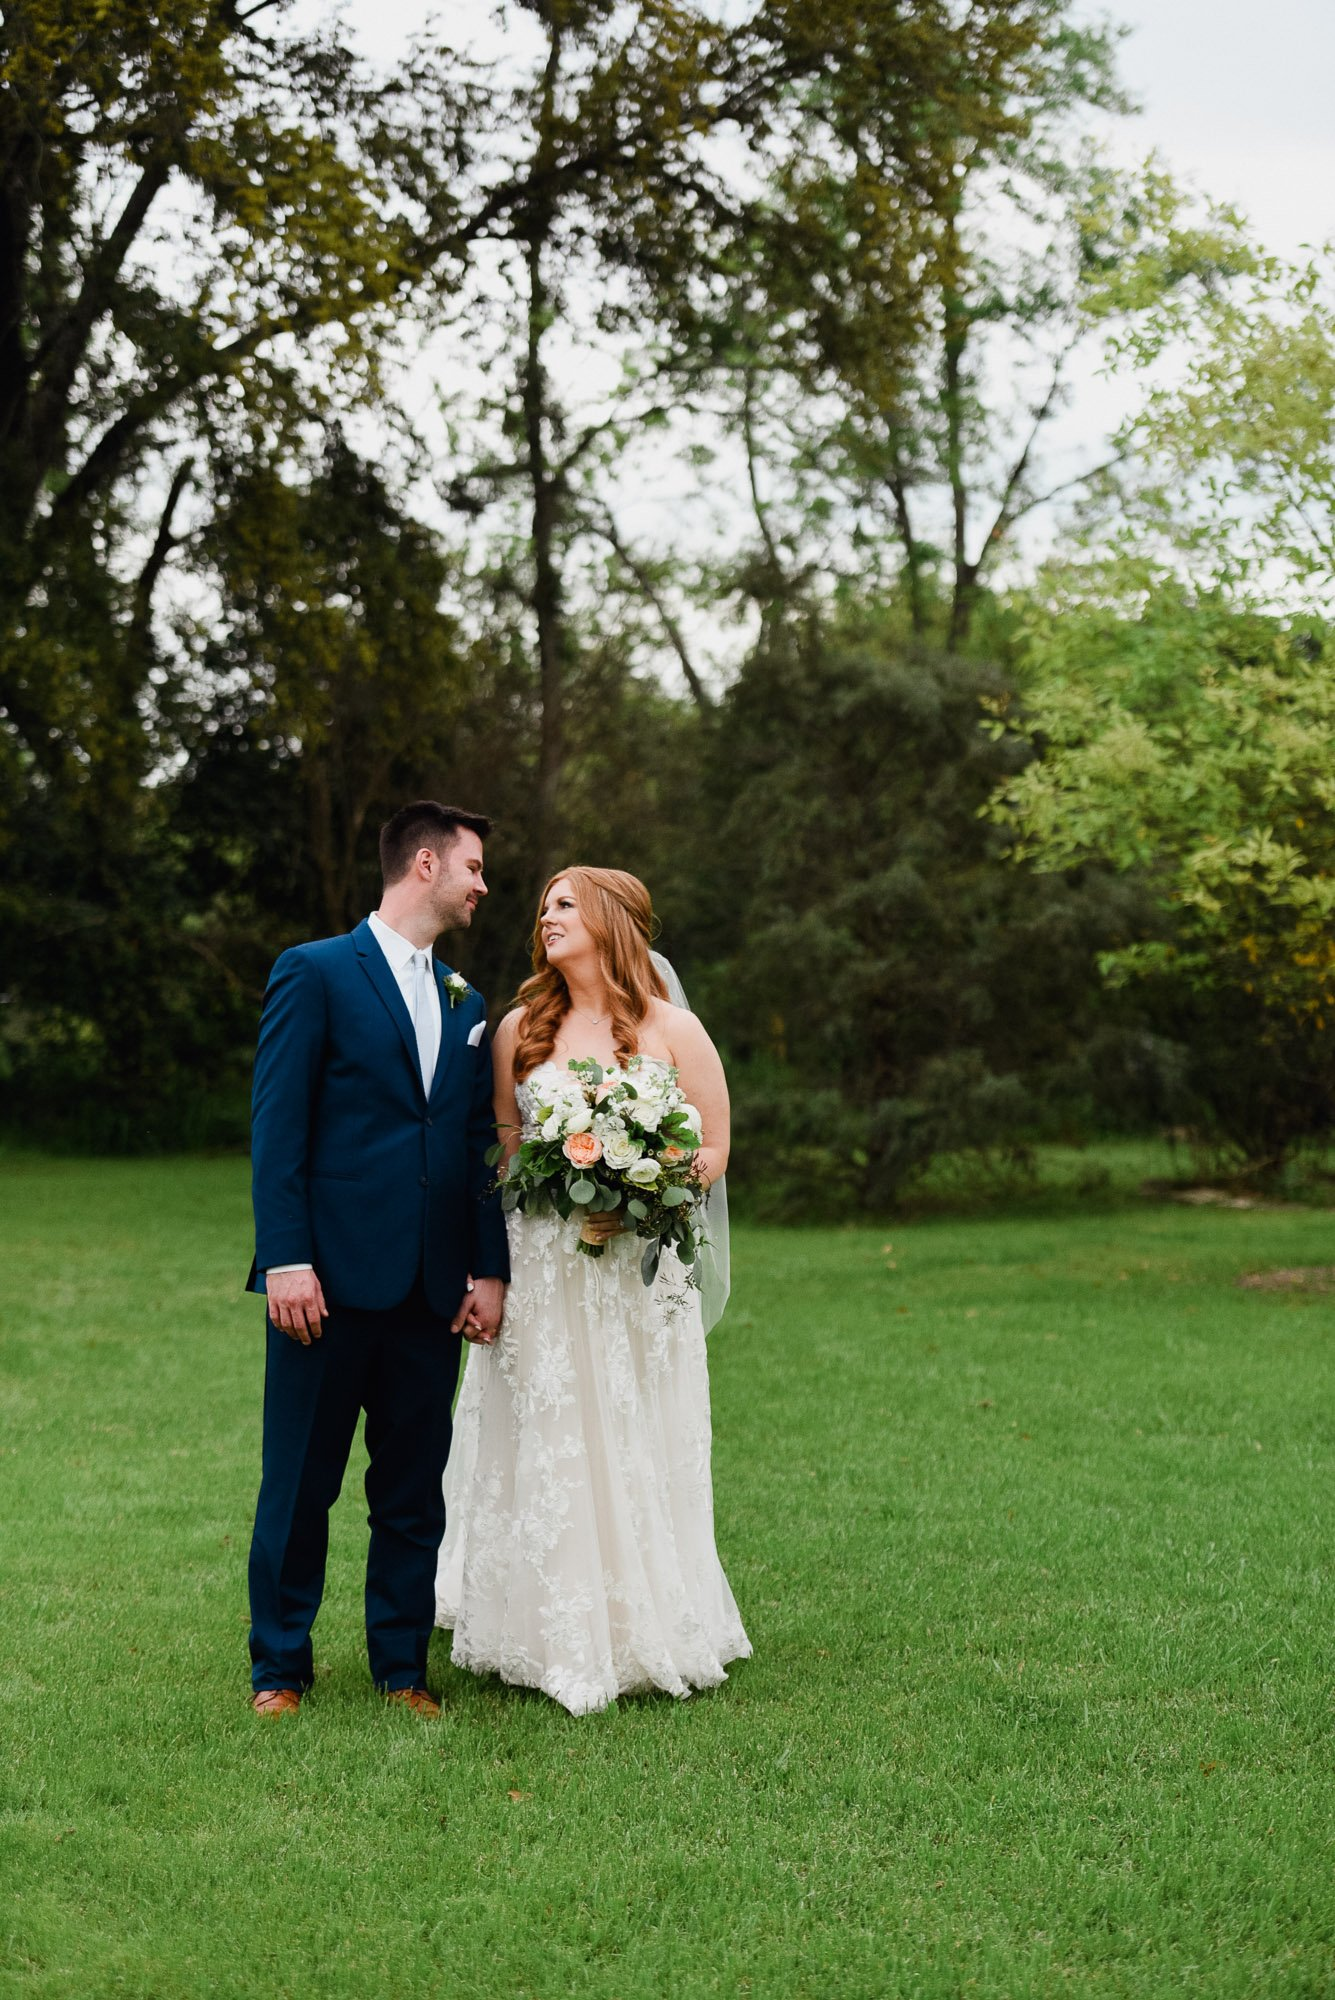 spring wedding at the barr mansion in austin texas